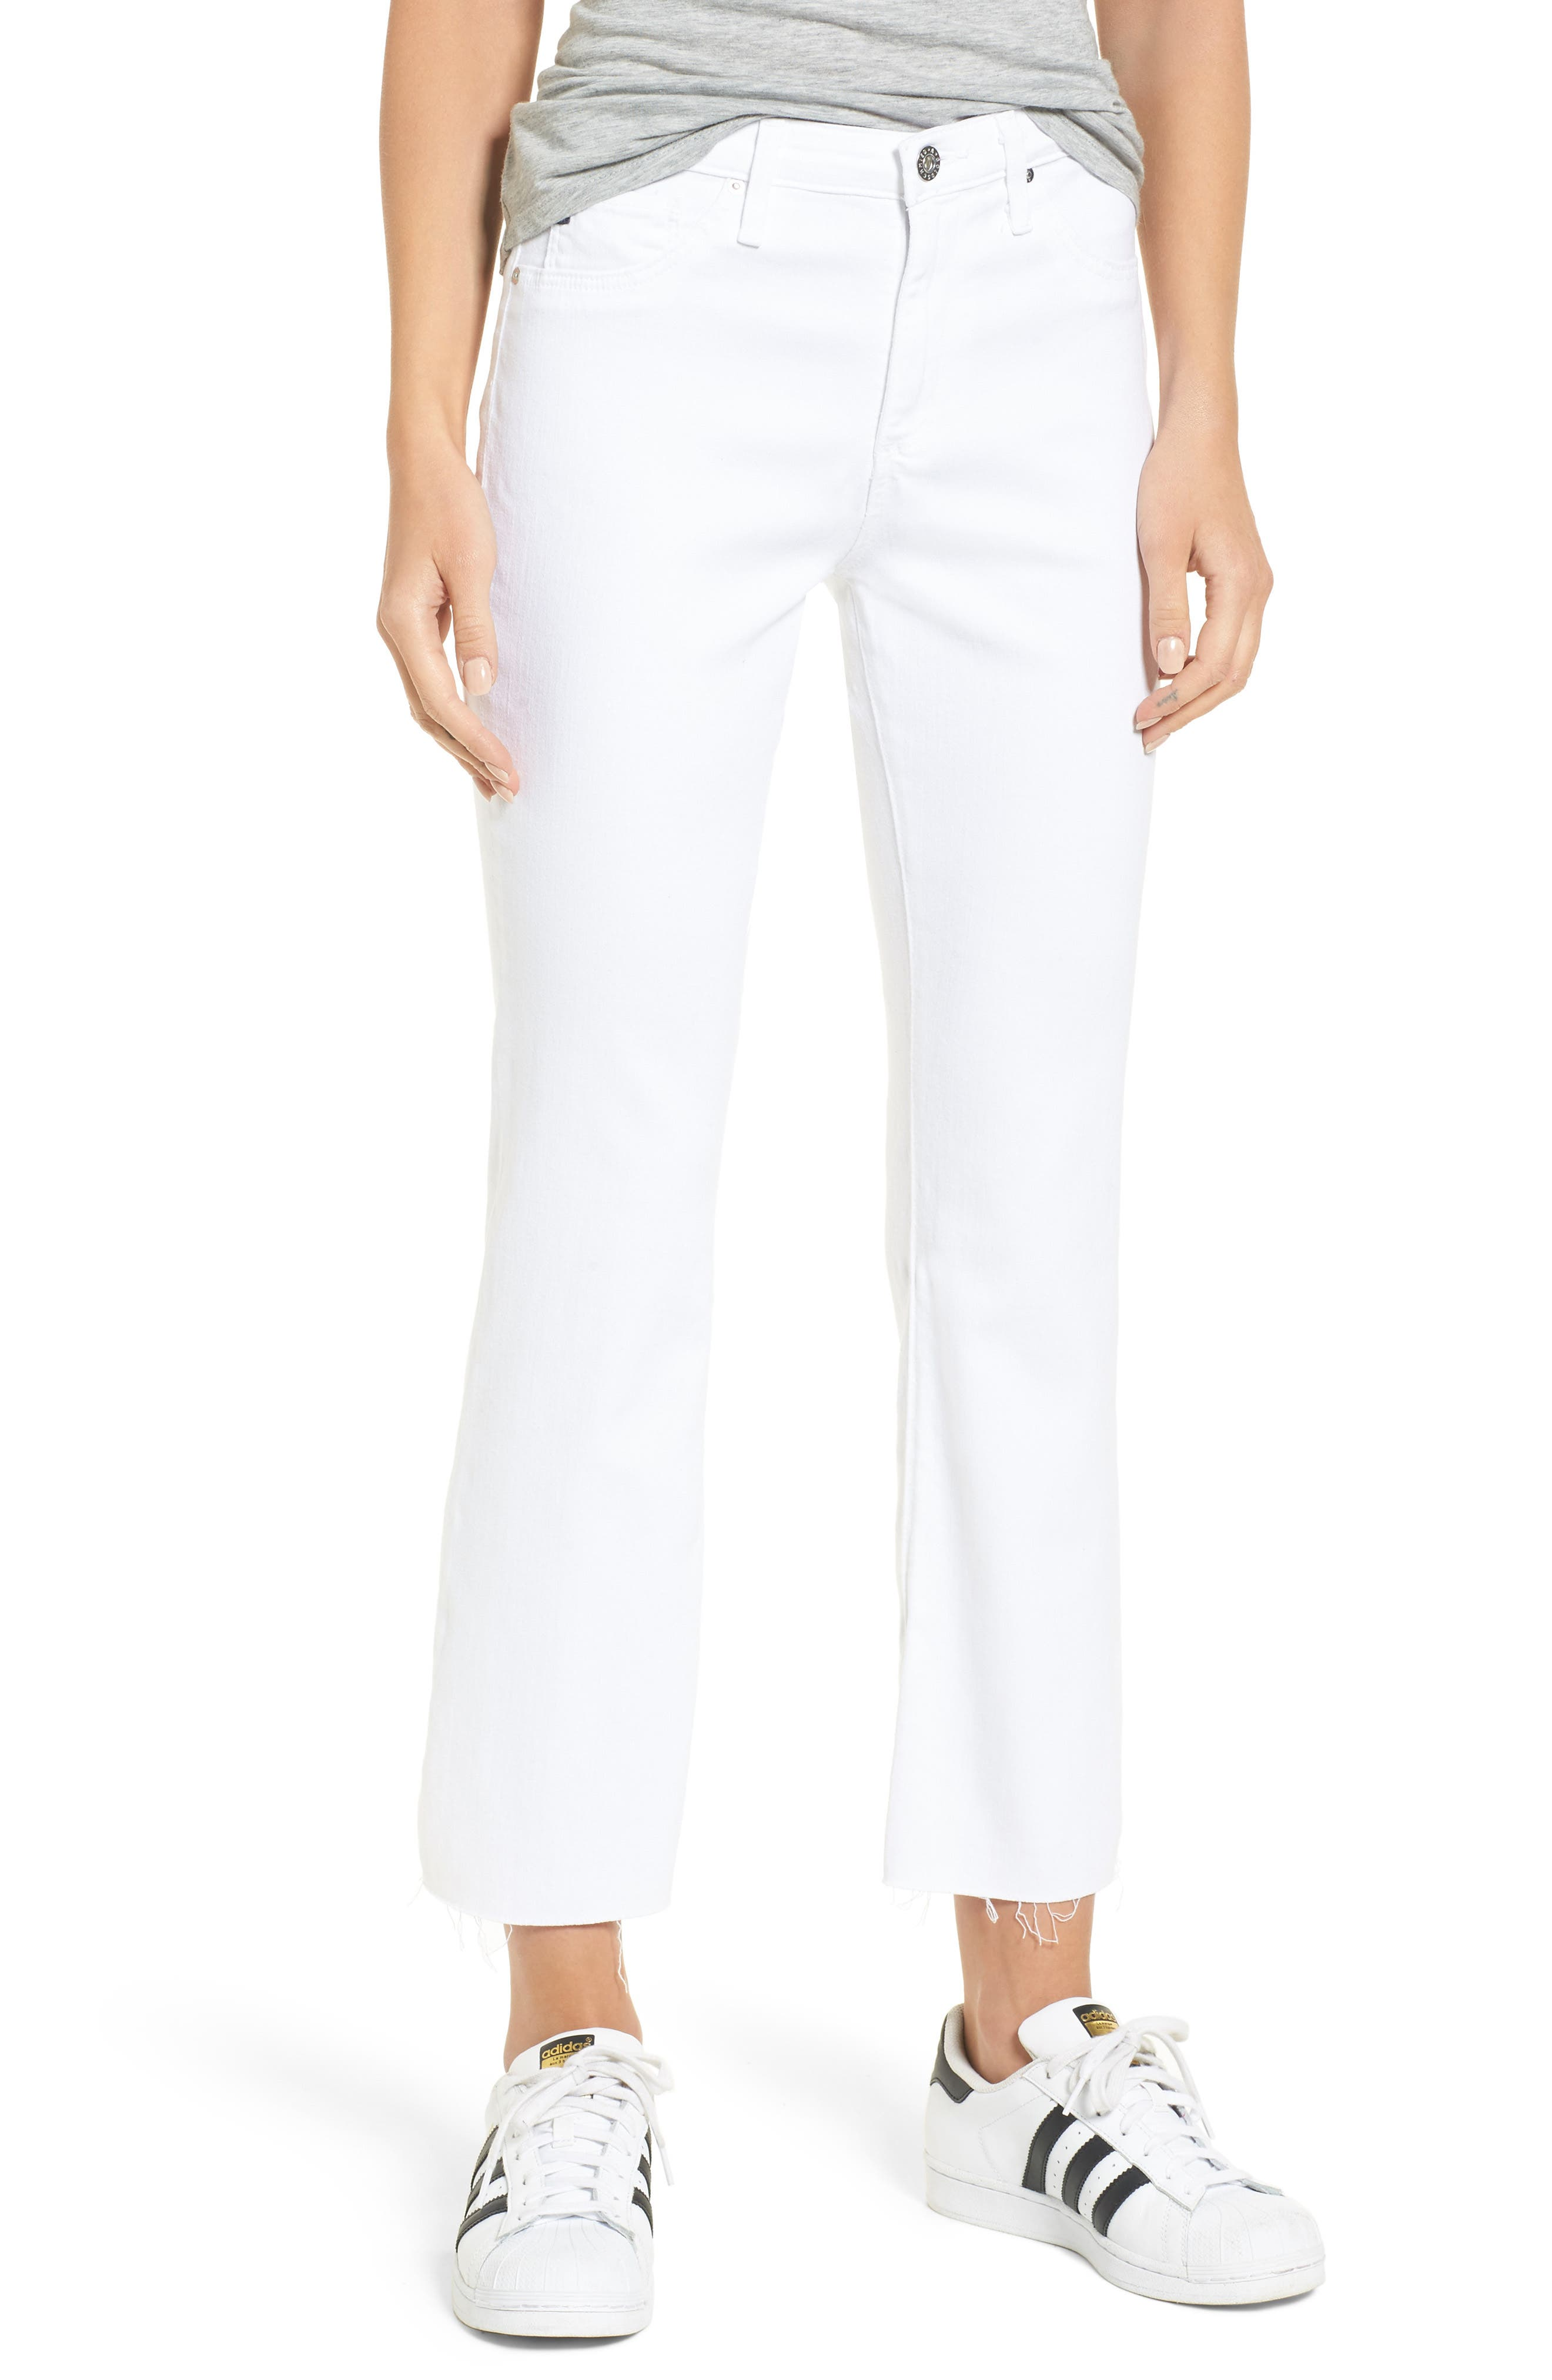 Alternate Image 1 Selected - AG Jodi High Waist Crop Jeans